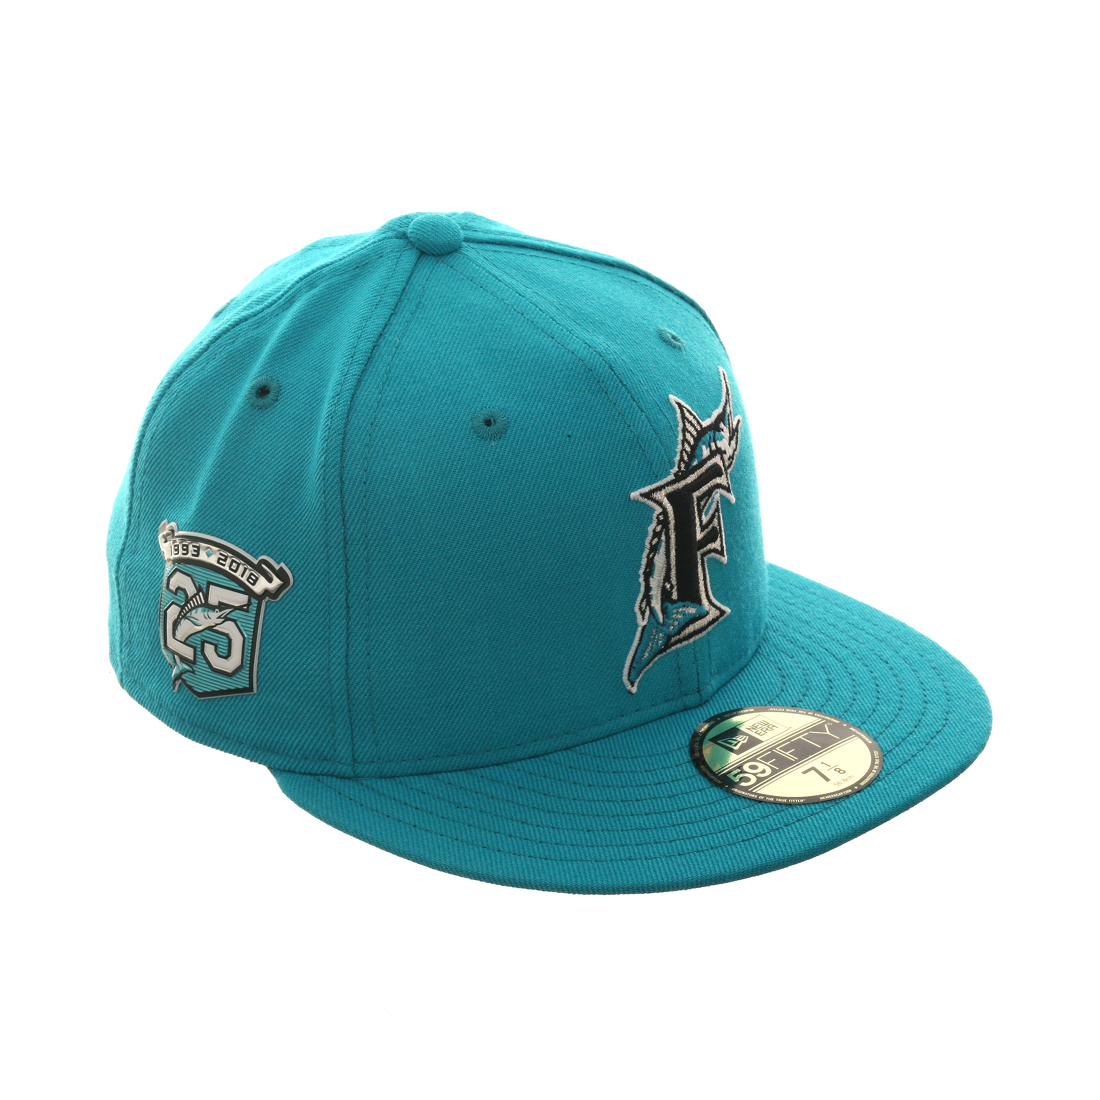 low priced ba5b6 4ff3b New Era 59Fifty Turn Back The Clock Miami Marlins 25th Anniversary Patch Hat  - Teal